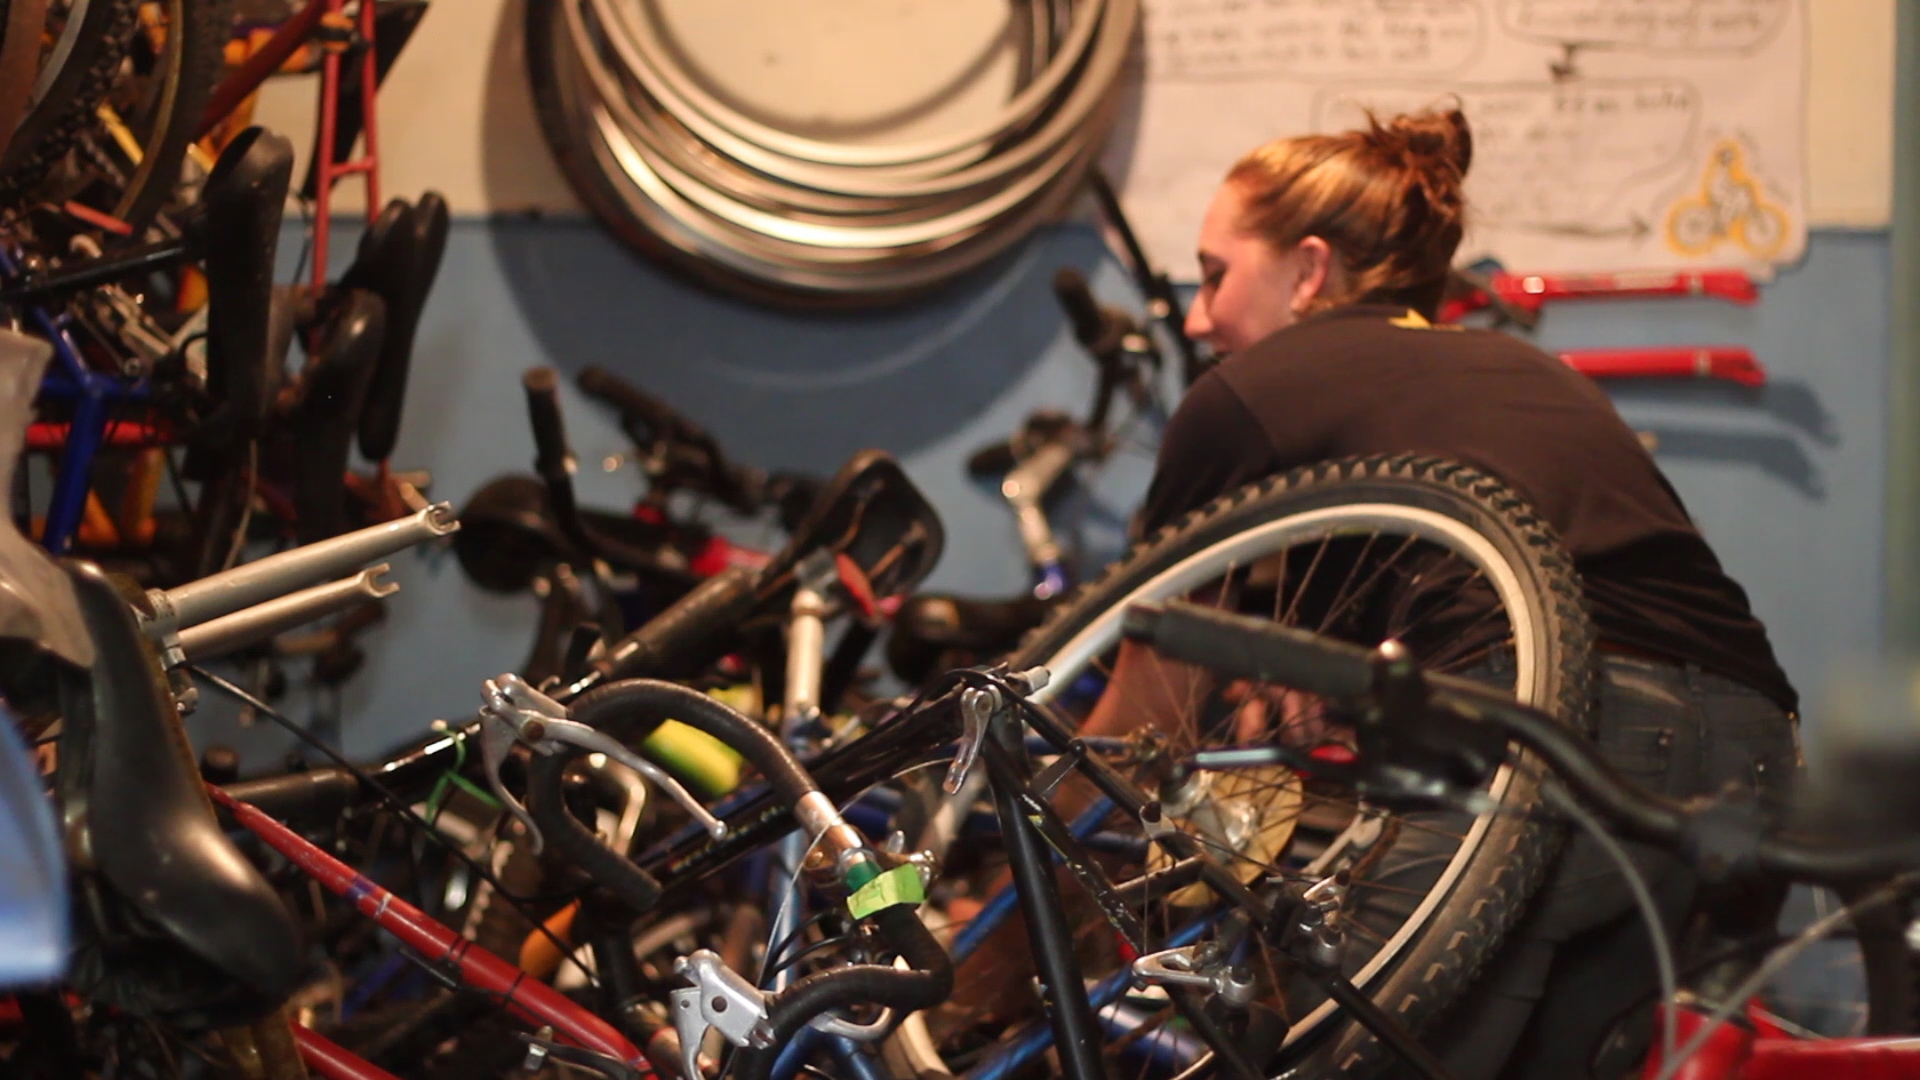 Volunteer mechanic, Sylvie Froncek, sifting through a pile of donated bicycles.